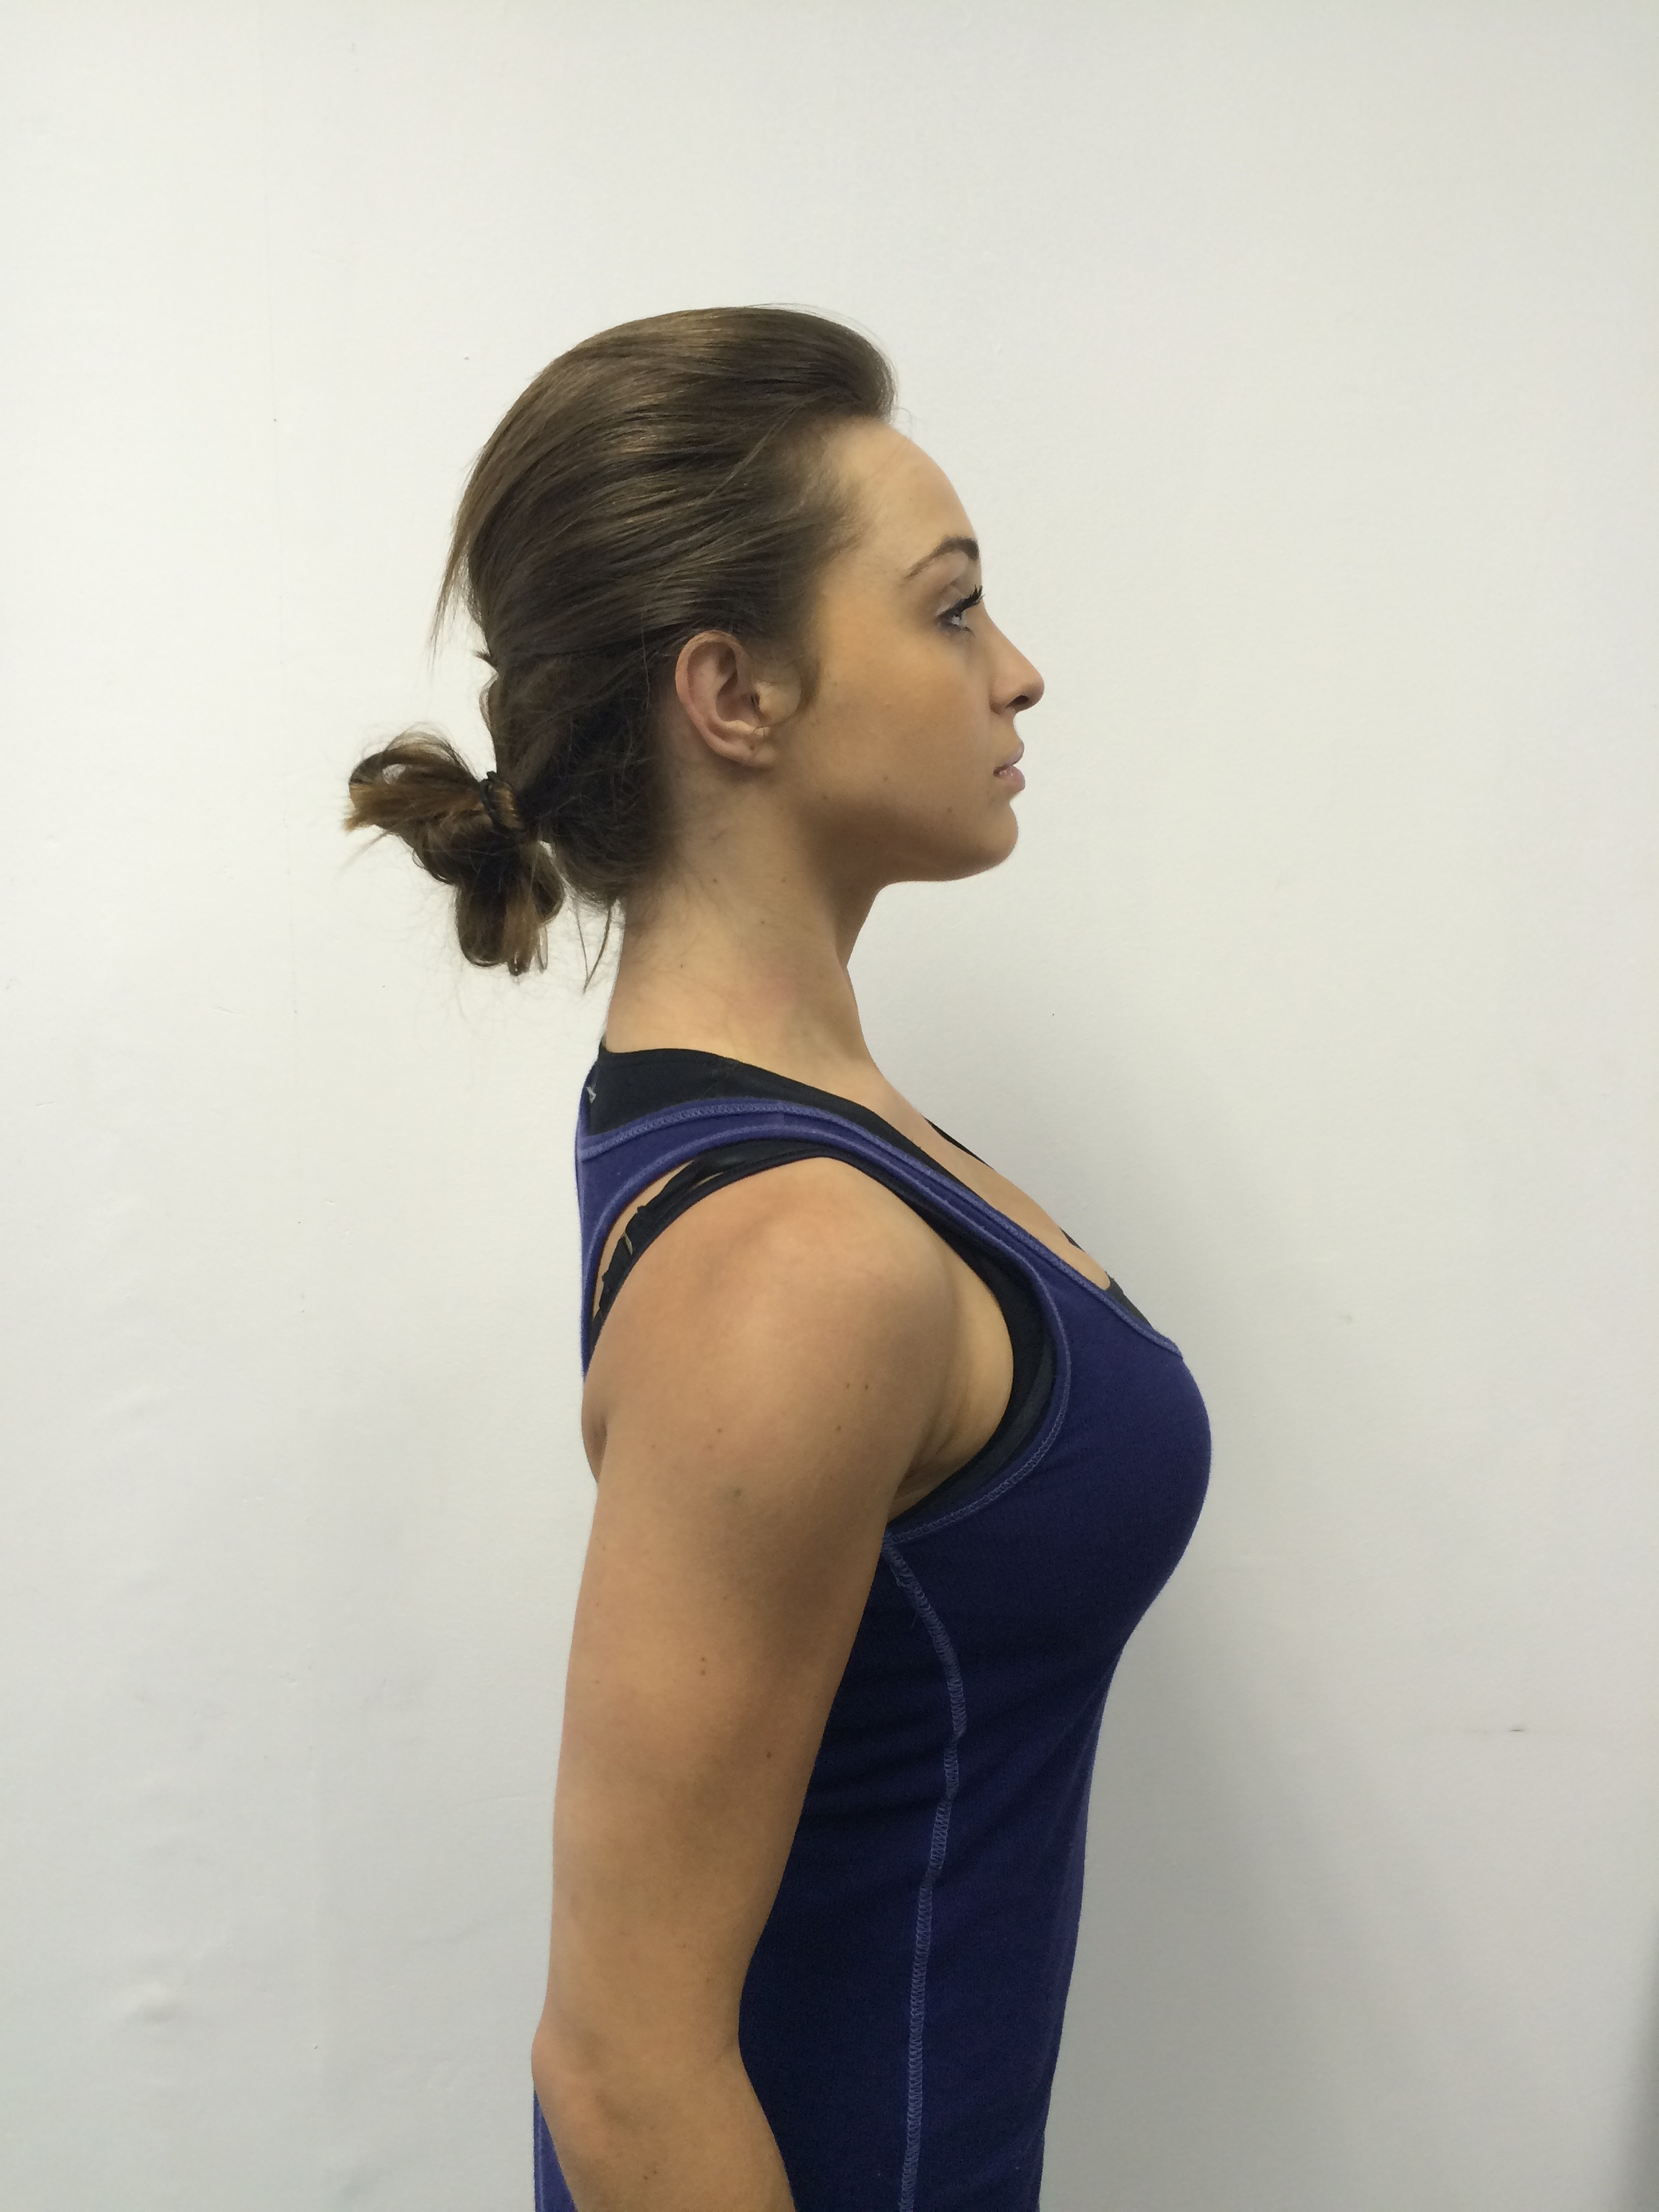 bad-posture-correction-exercise-stretch-home